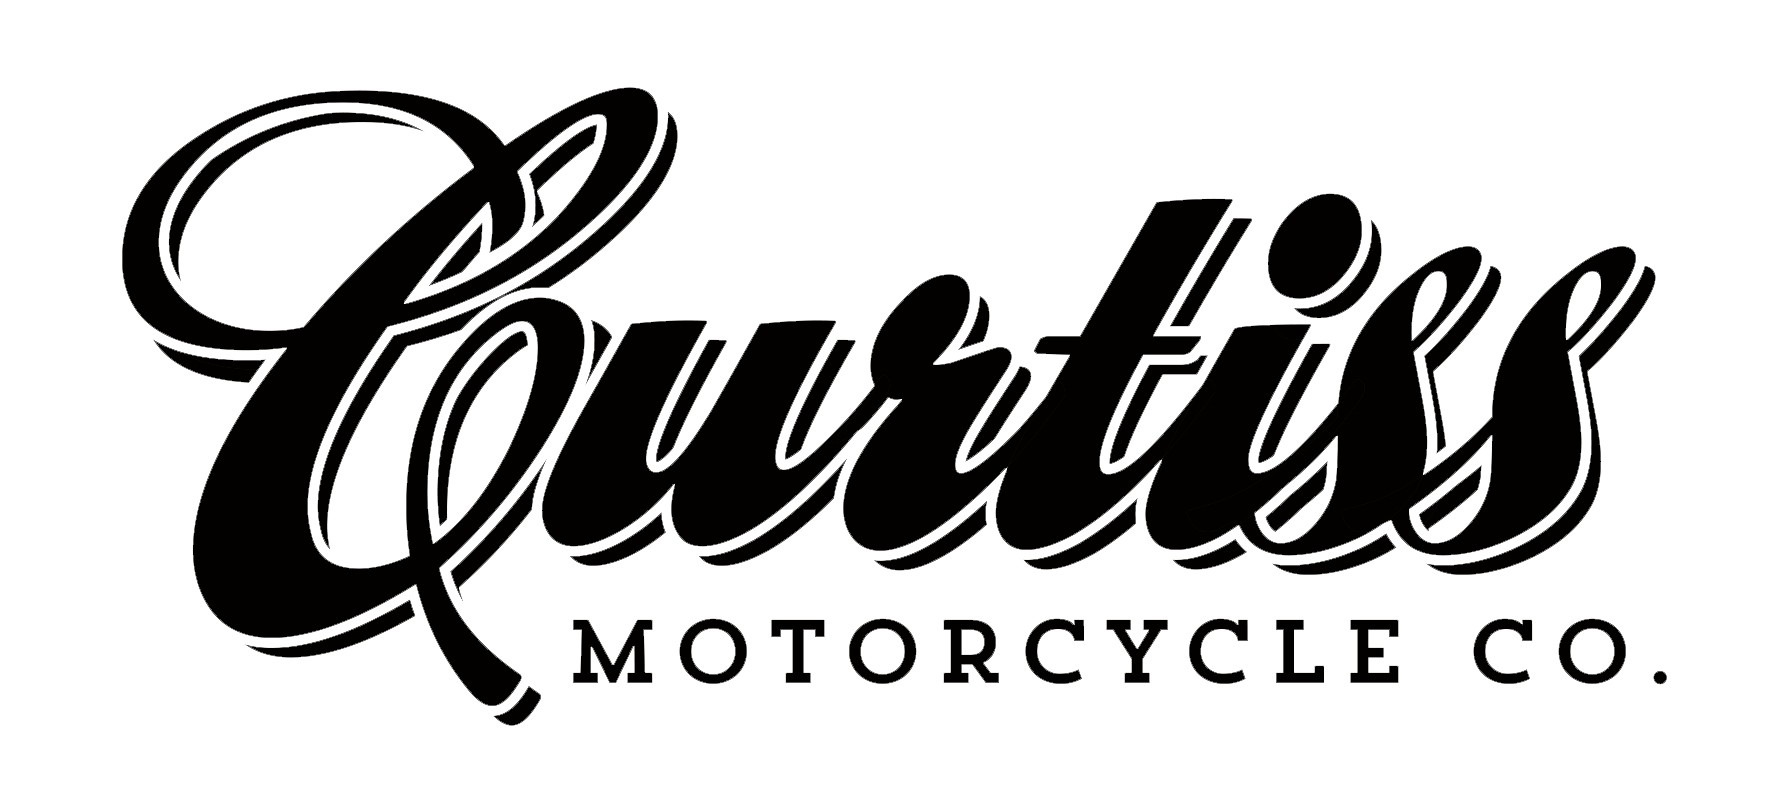 Curtiss Script_Official